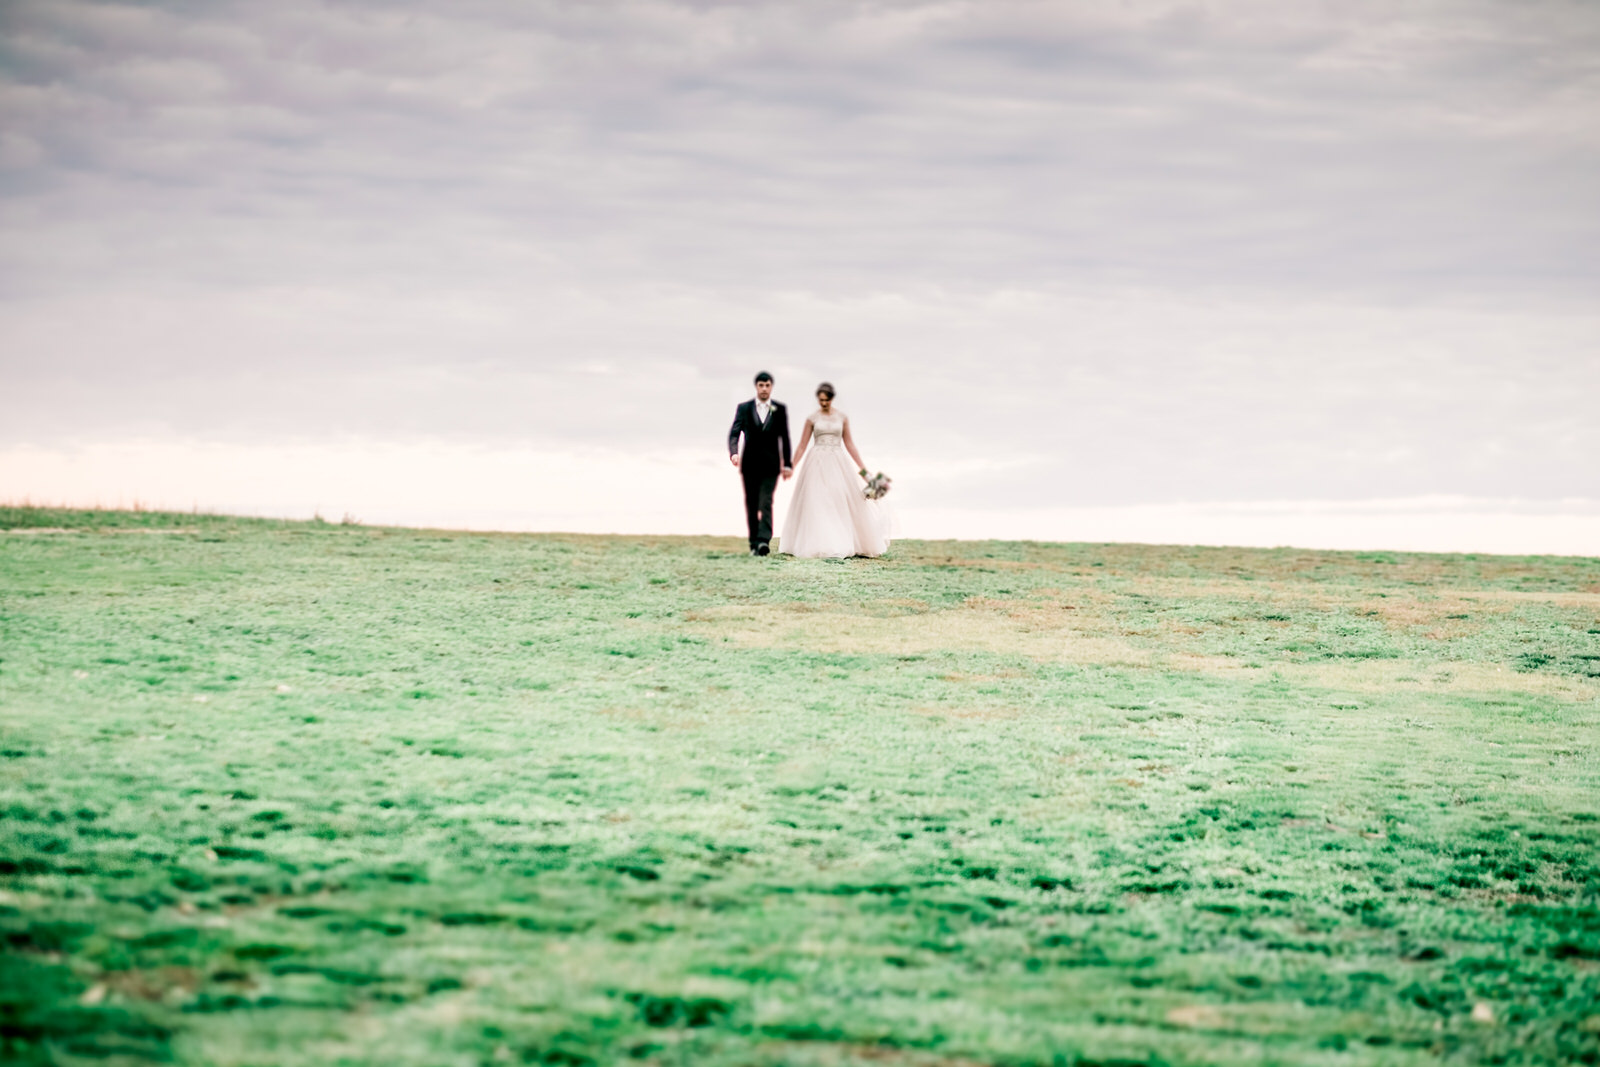 Bride-and-groom-on-a-hill-in-country-victoria-winery-walking-hand-in-hand-in-a-romantic-setting.